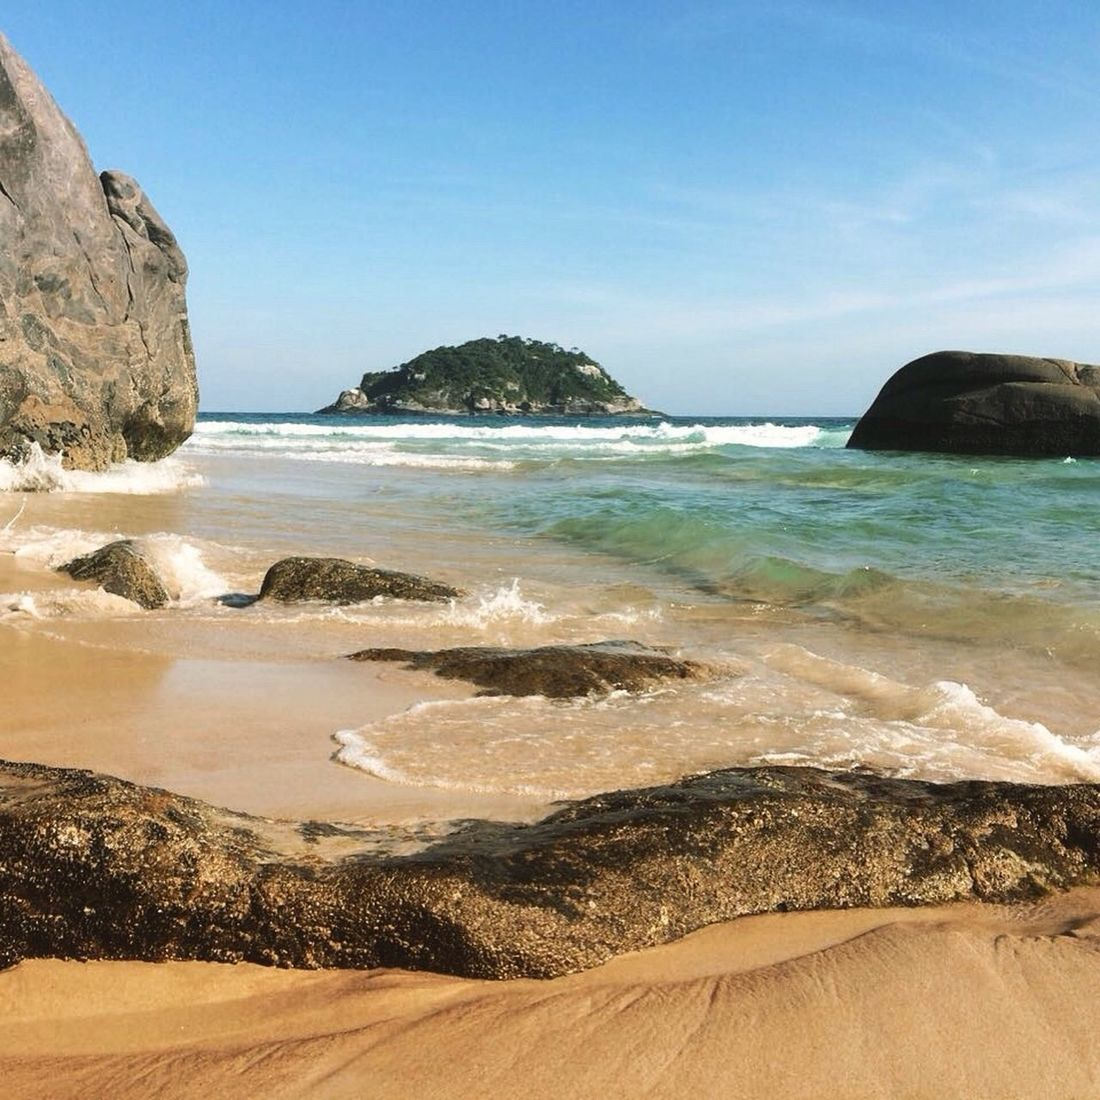 Sunlight Beach Sea Nature Horizon Over Water Sand Scenics Beauty In Nature Tranquil Scene Tranquility Water Sky Day No People Outdoors Rio De Janeiro Bestoftheday Best EyeEm Shot Rio De Janeiro Eyeem Fotos Collection⛵ O Rio De Janeiro Continua Lindo 🎶 Life Is A Beach